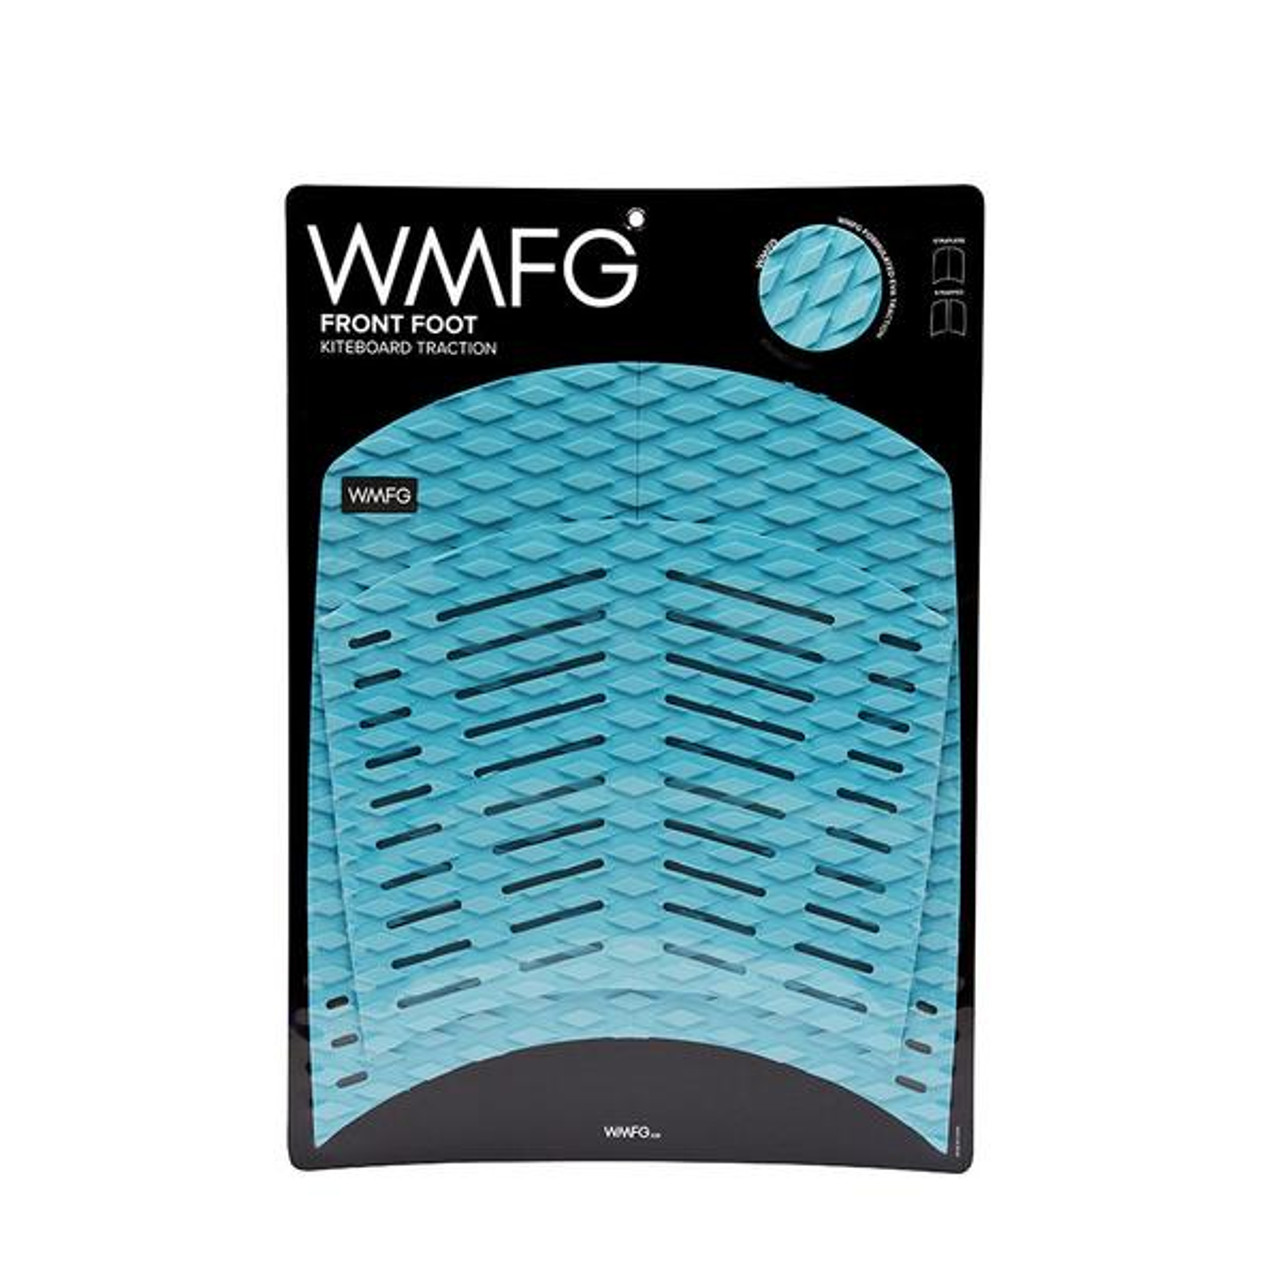 WMFG TRACTION: Front Foot